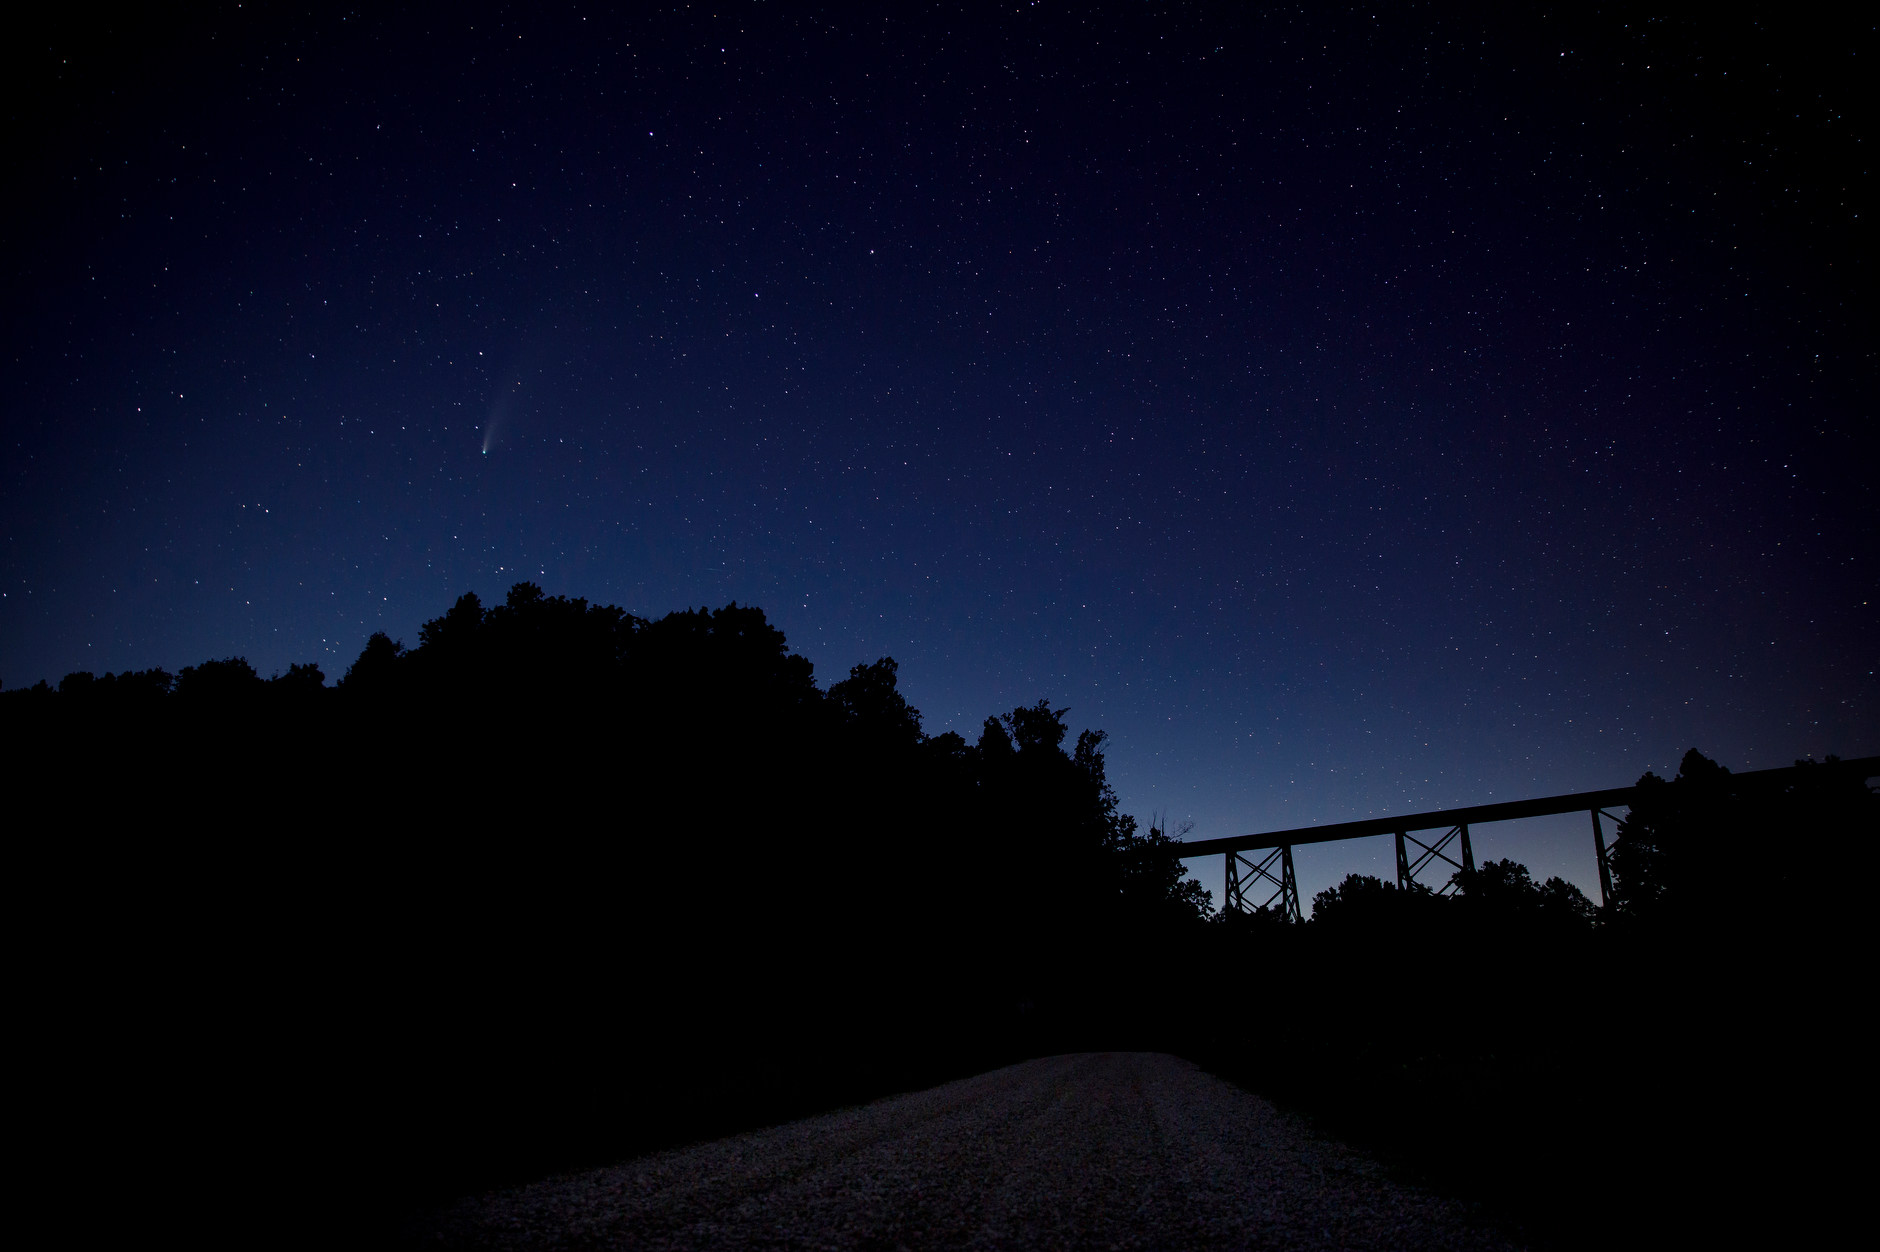 Comet NEOWISE is seen in the night sky near the Tulip Viaduct, pictured in silhouette at right, in rural Greene County, Indiana on Thursday, July 23, 2020. (Photo by James Brosher)